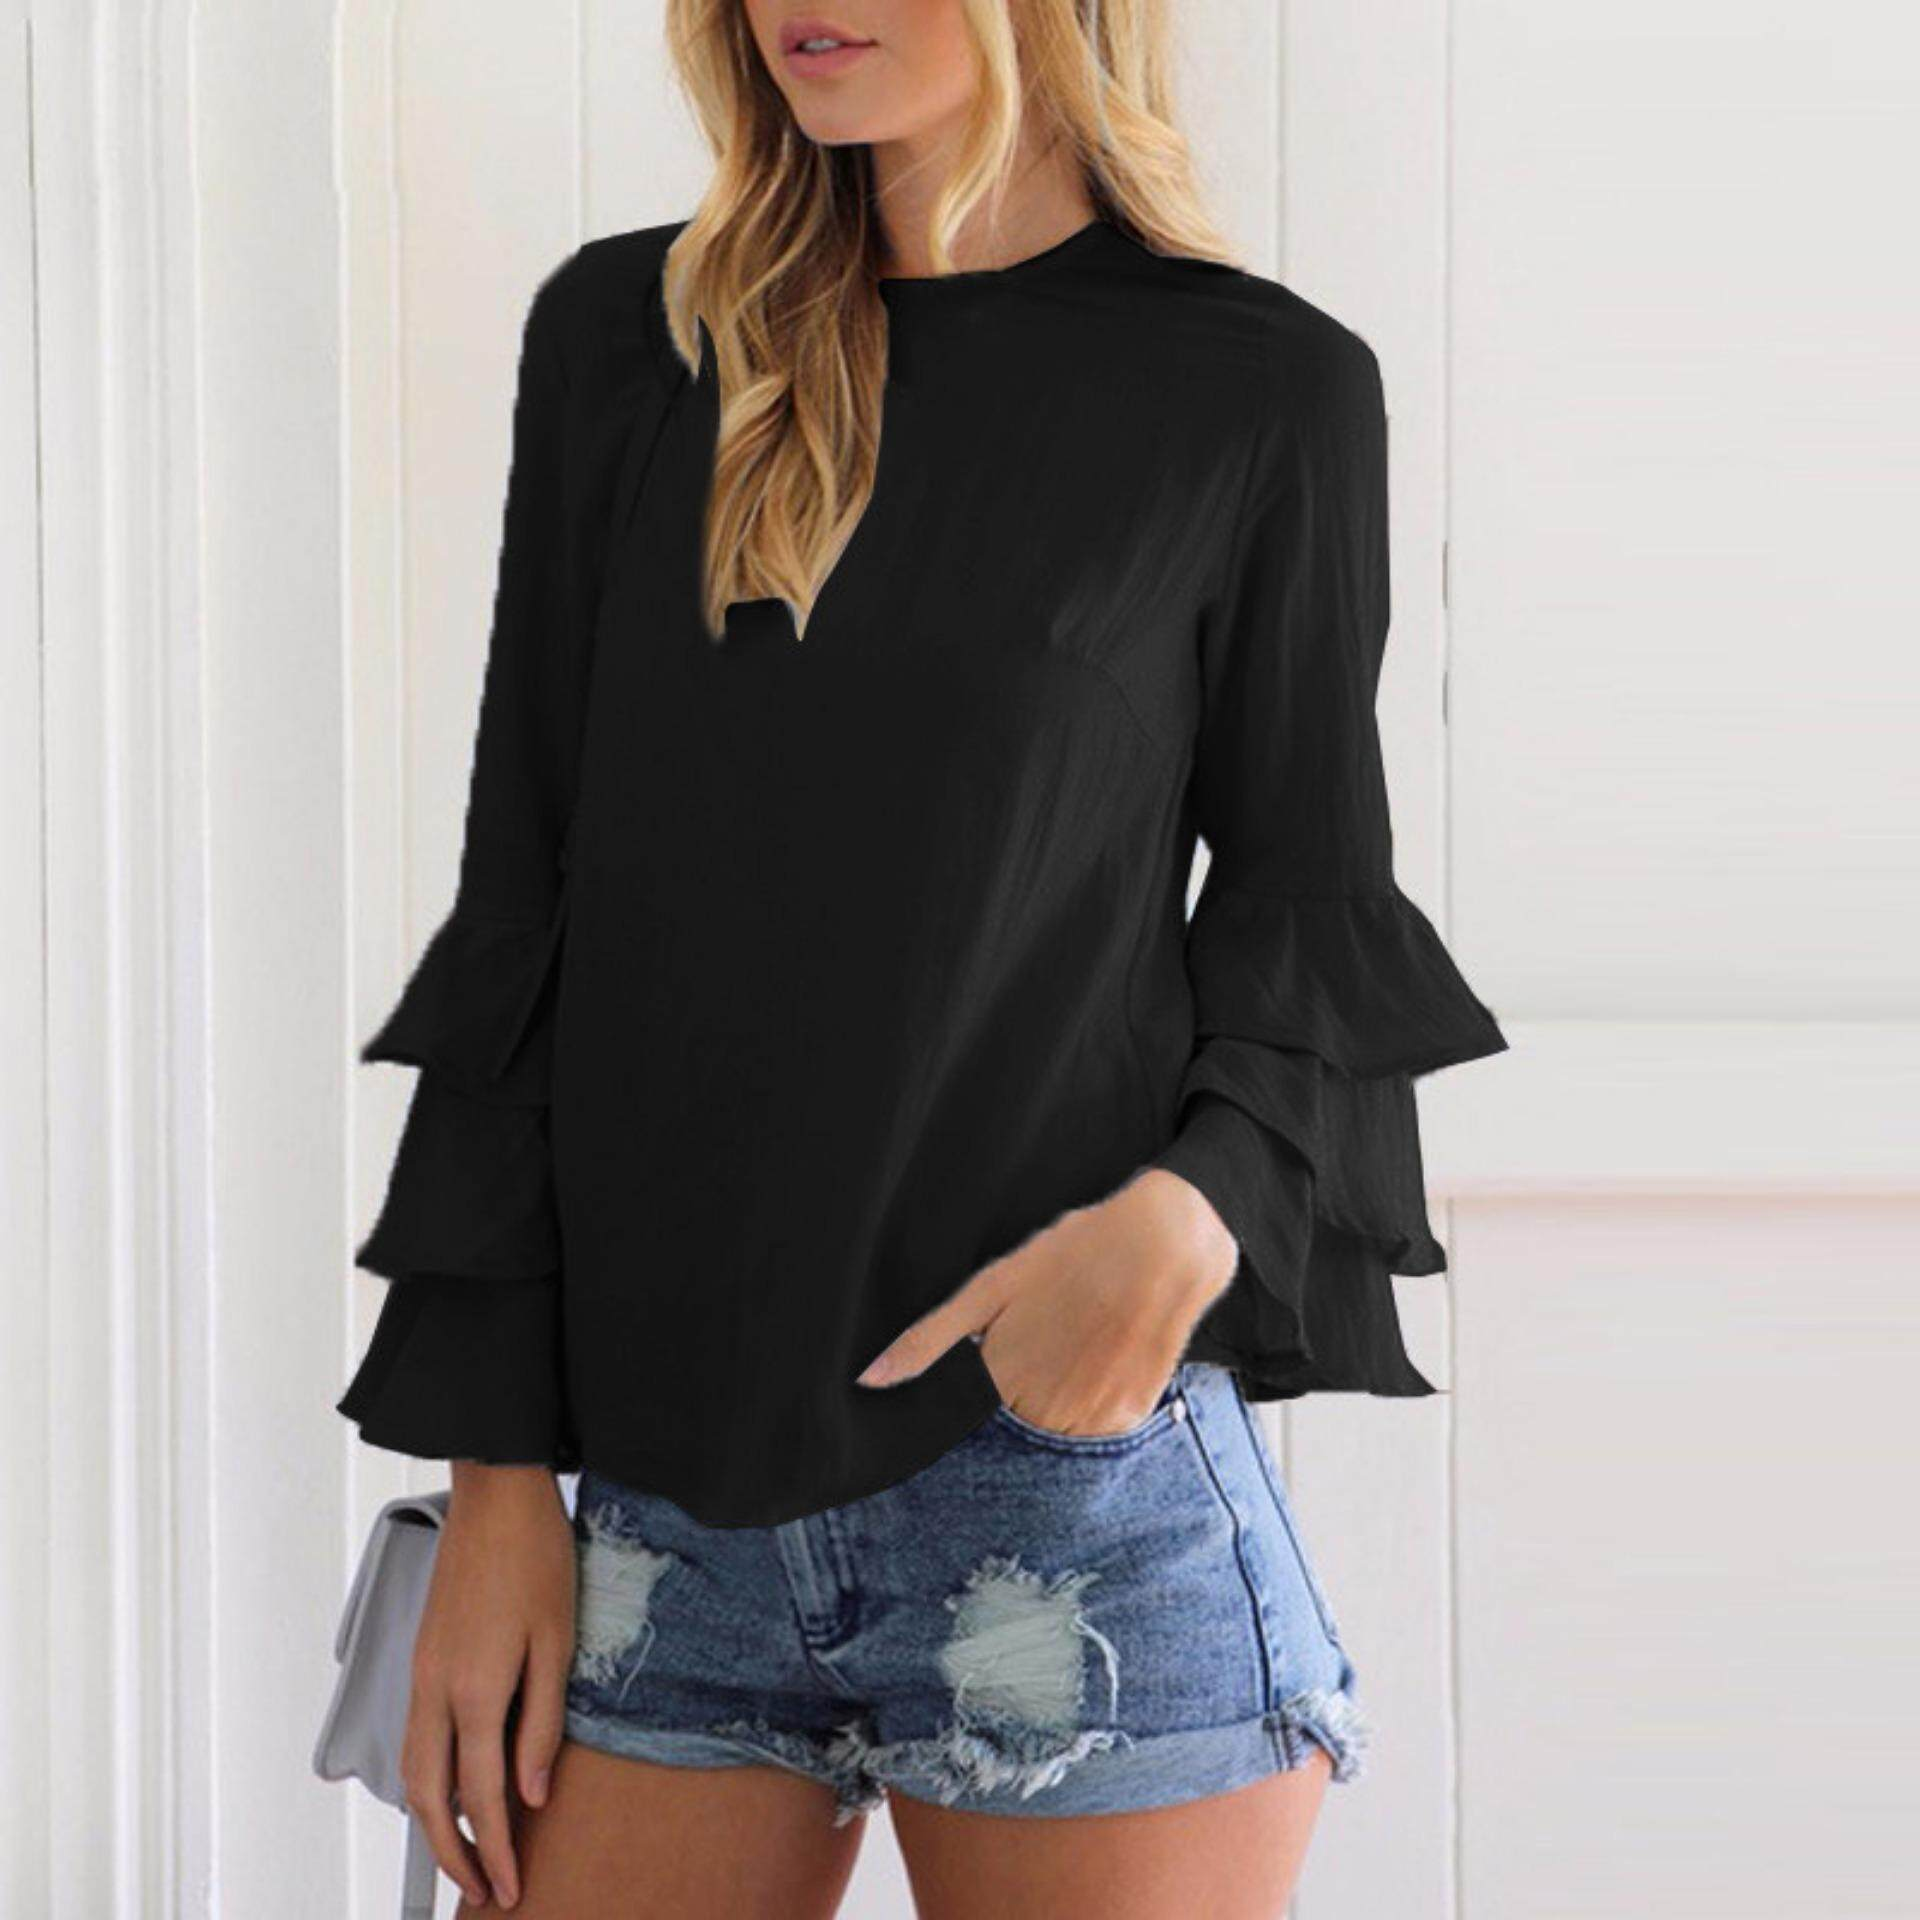 Bolster Store Women's Elegant Flared Bell Ruffled Flounce Long Sleeve Blouses Casual Shirts Round Neck Tee ( Black )